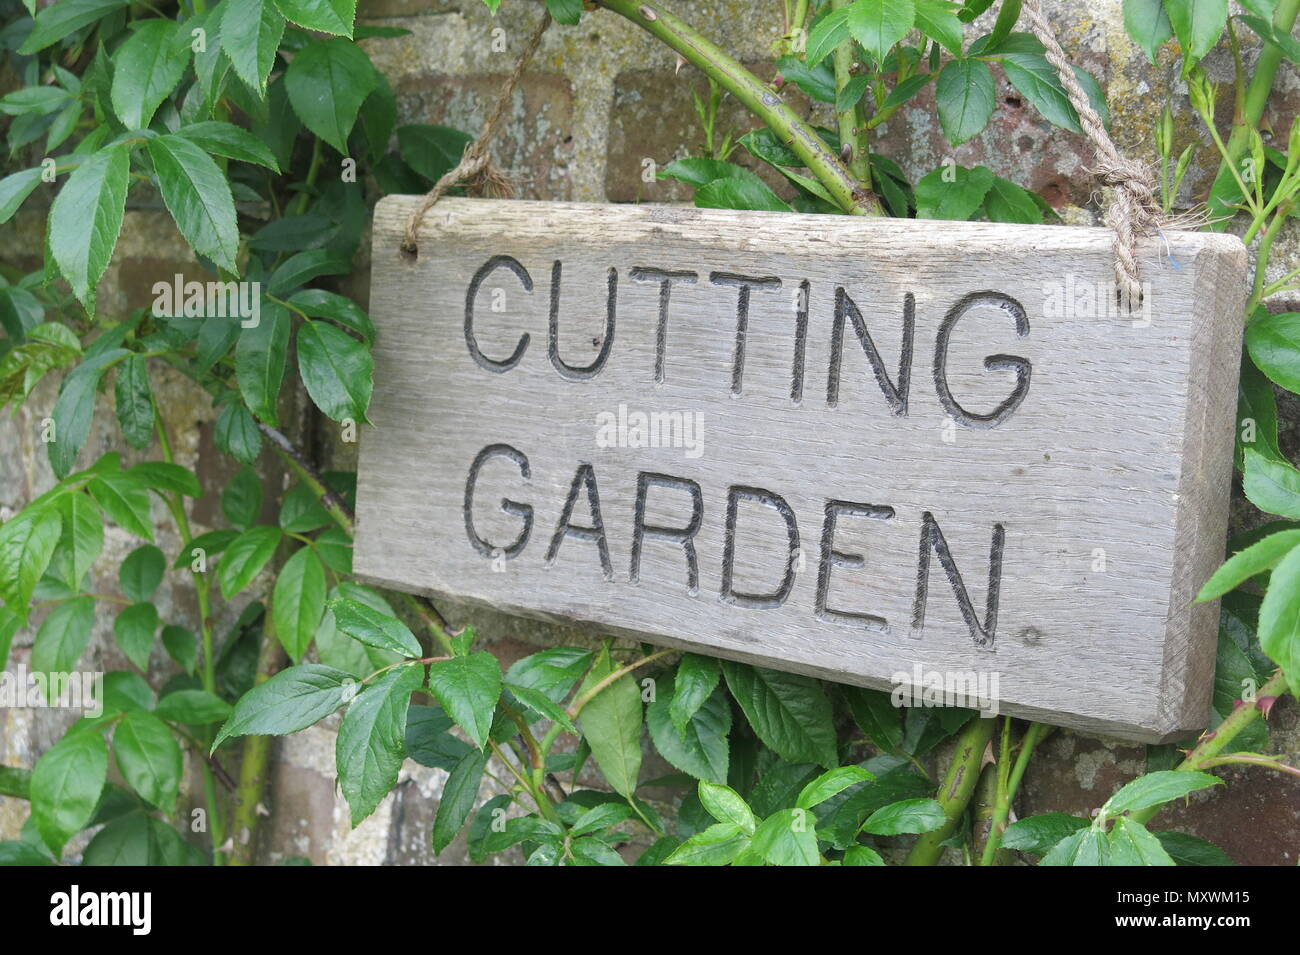 A rustic wooden signboard, hanging on a rope, saying CUTTING GARDEN - Stock Image